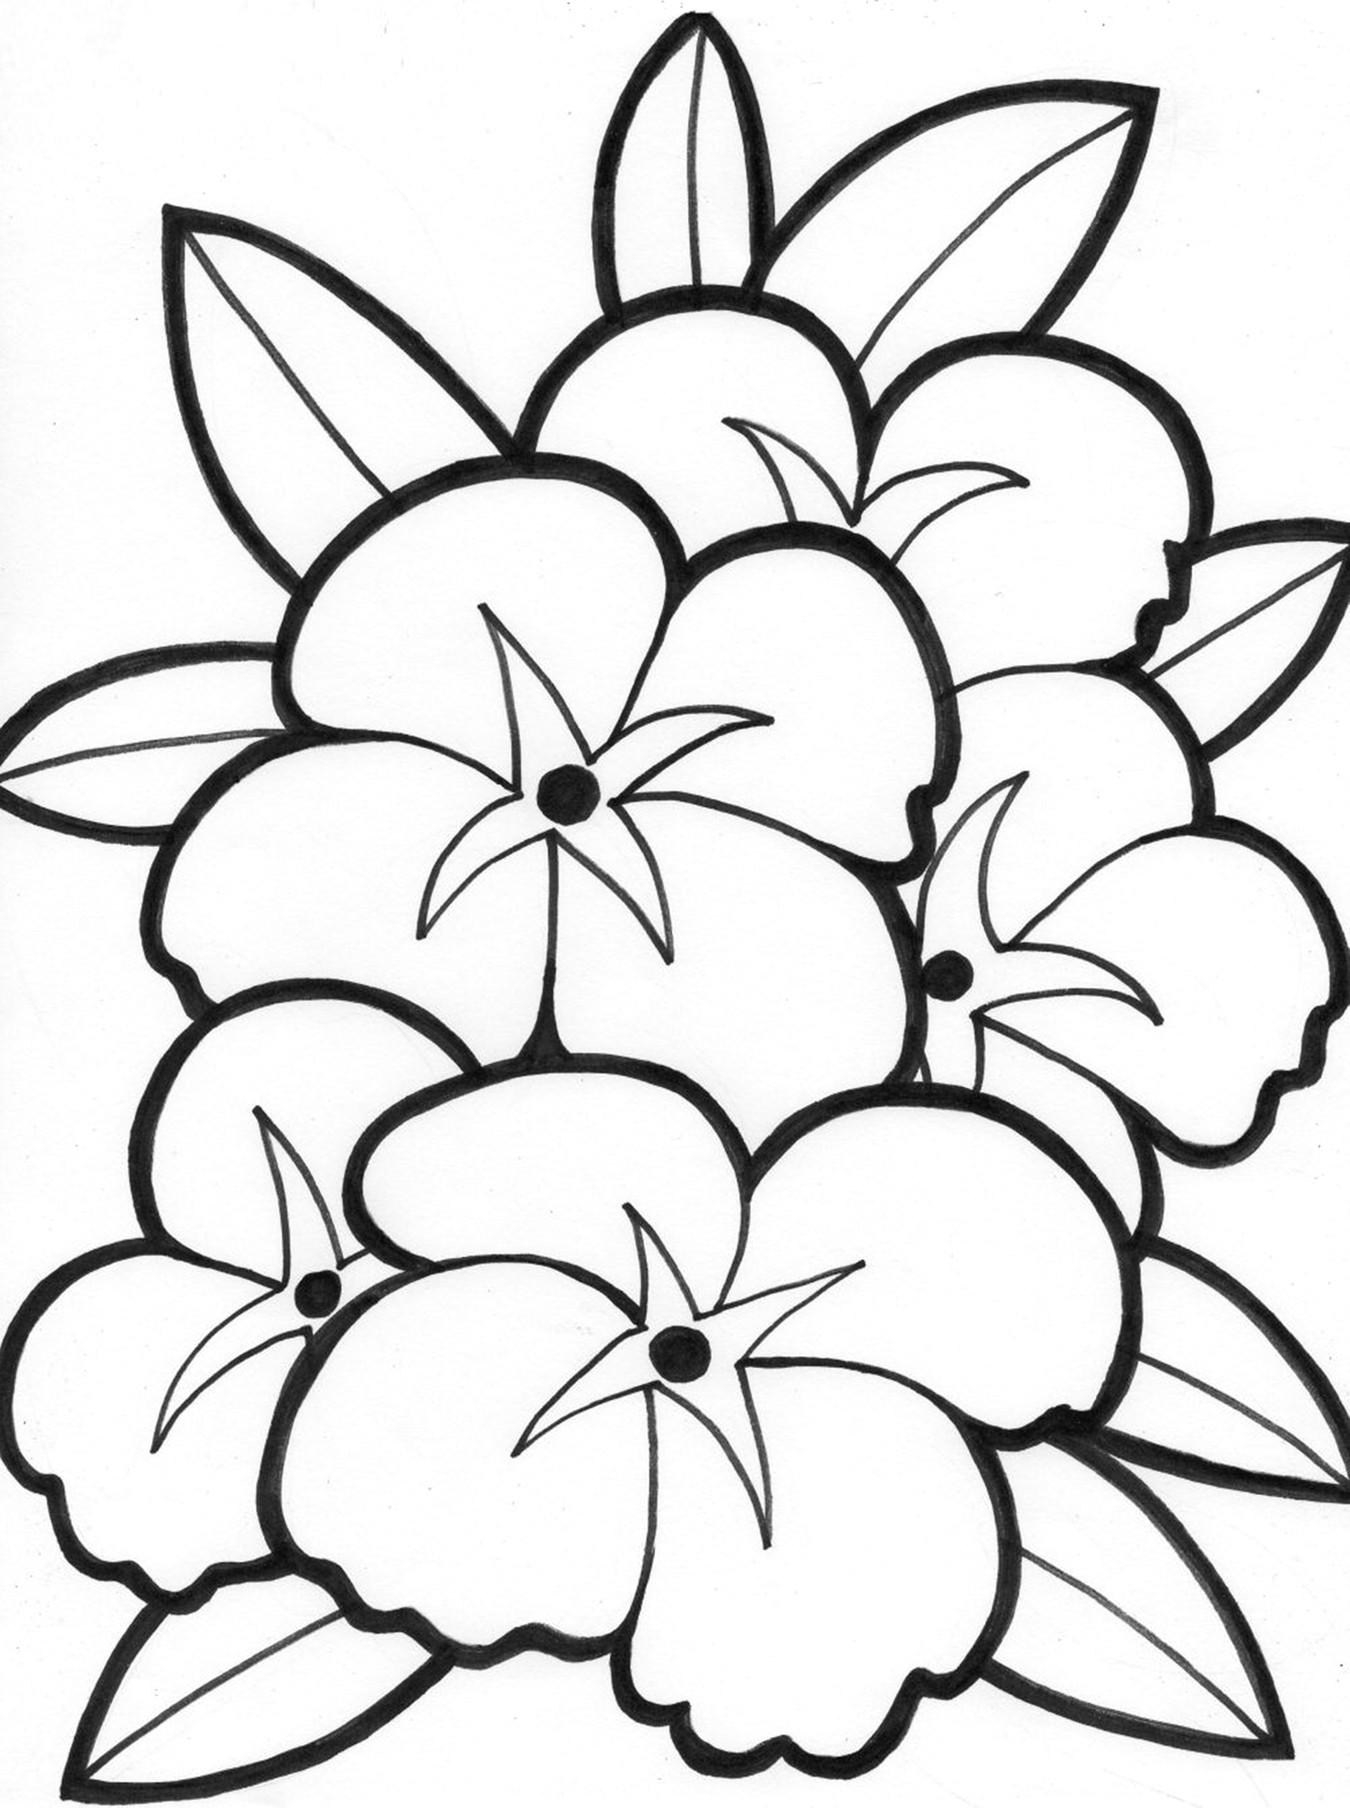 rainforest tree coloring page rainforest tree coloring page page coloring rainforest tree